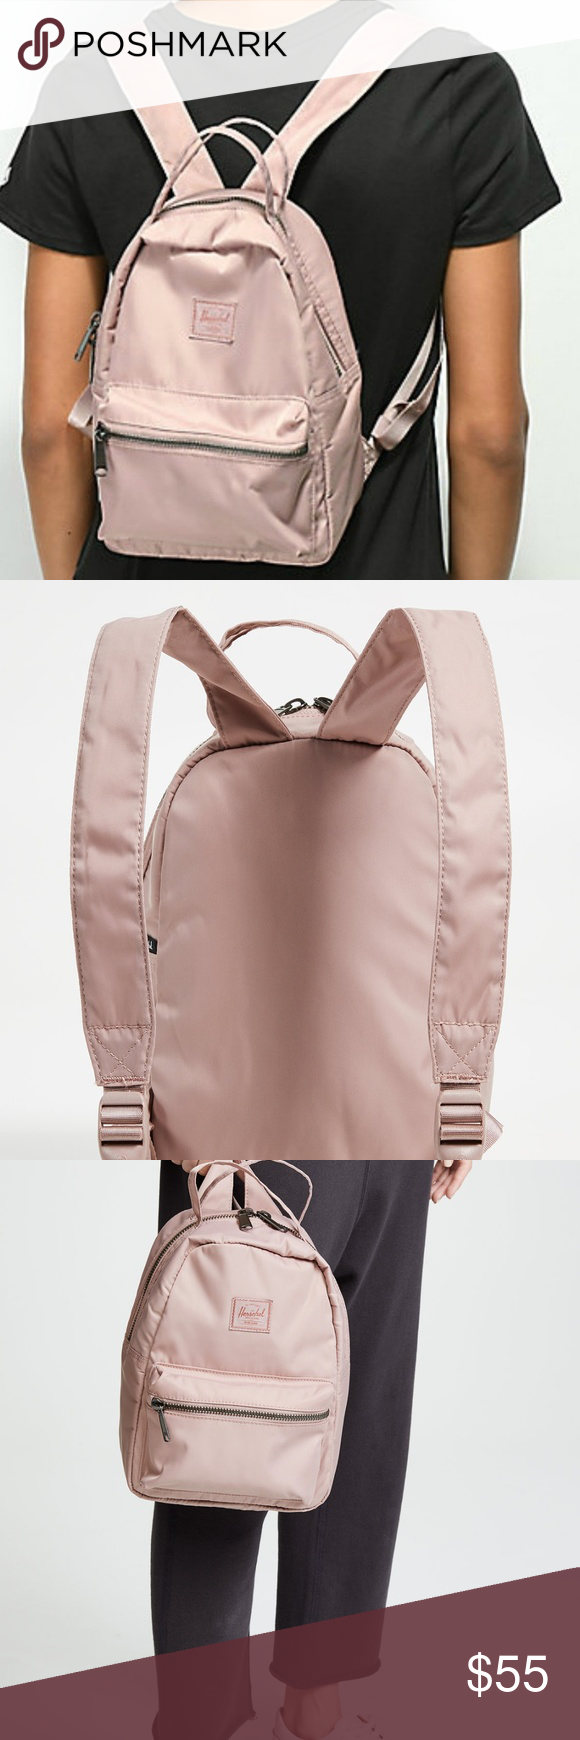 94c0c164bf NWT Herschel Nova Mini Backpack in Satin Ash Rose Herschel Supply Co Flight  Satin Nova Mini Backpack Ash Rose Super cute pink Herschel Supply Company  Bags ...